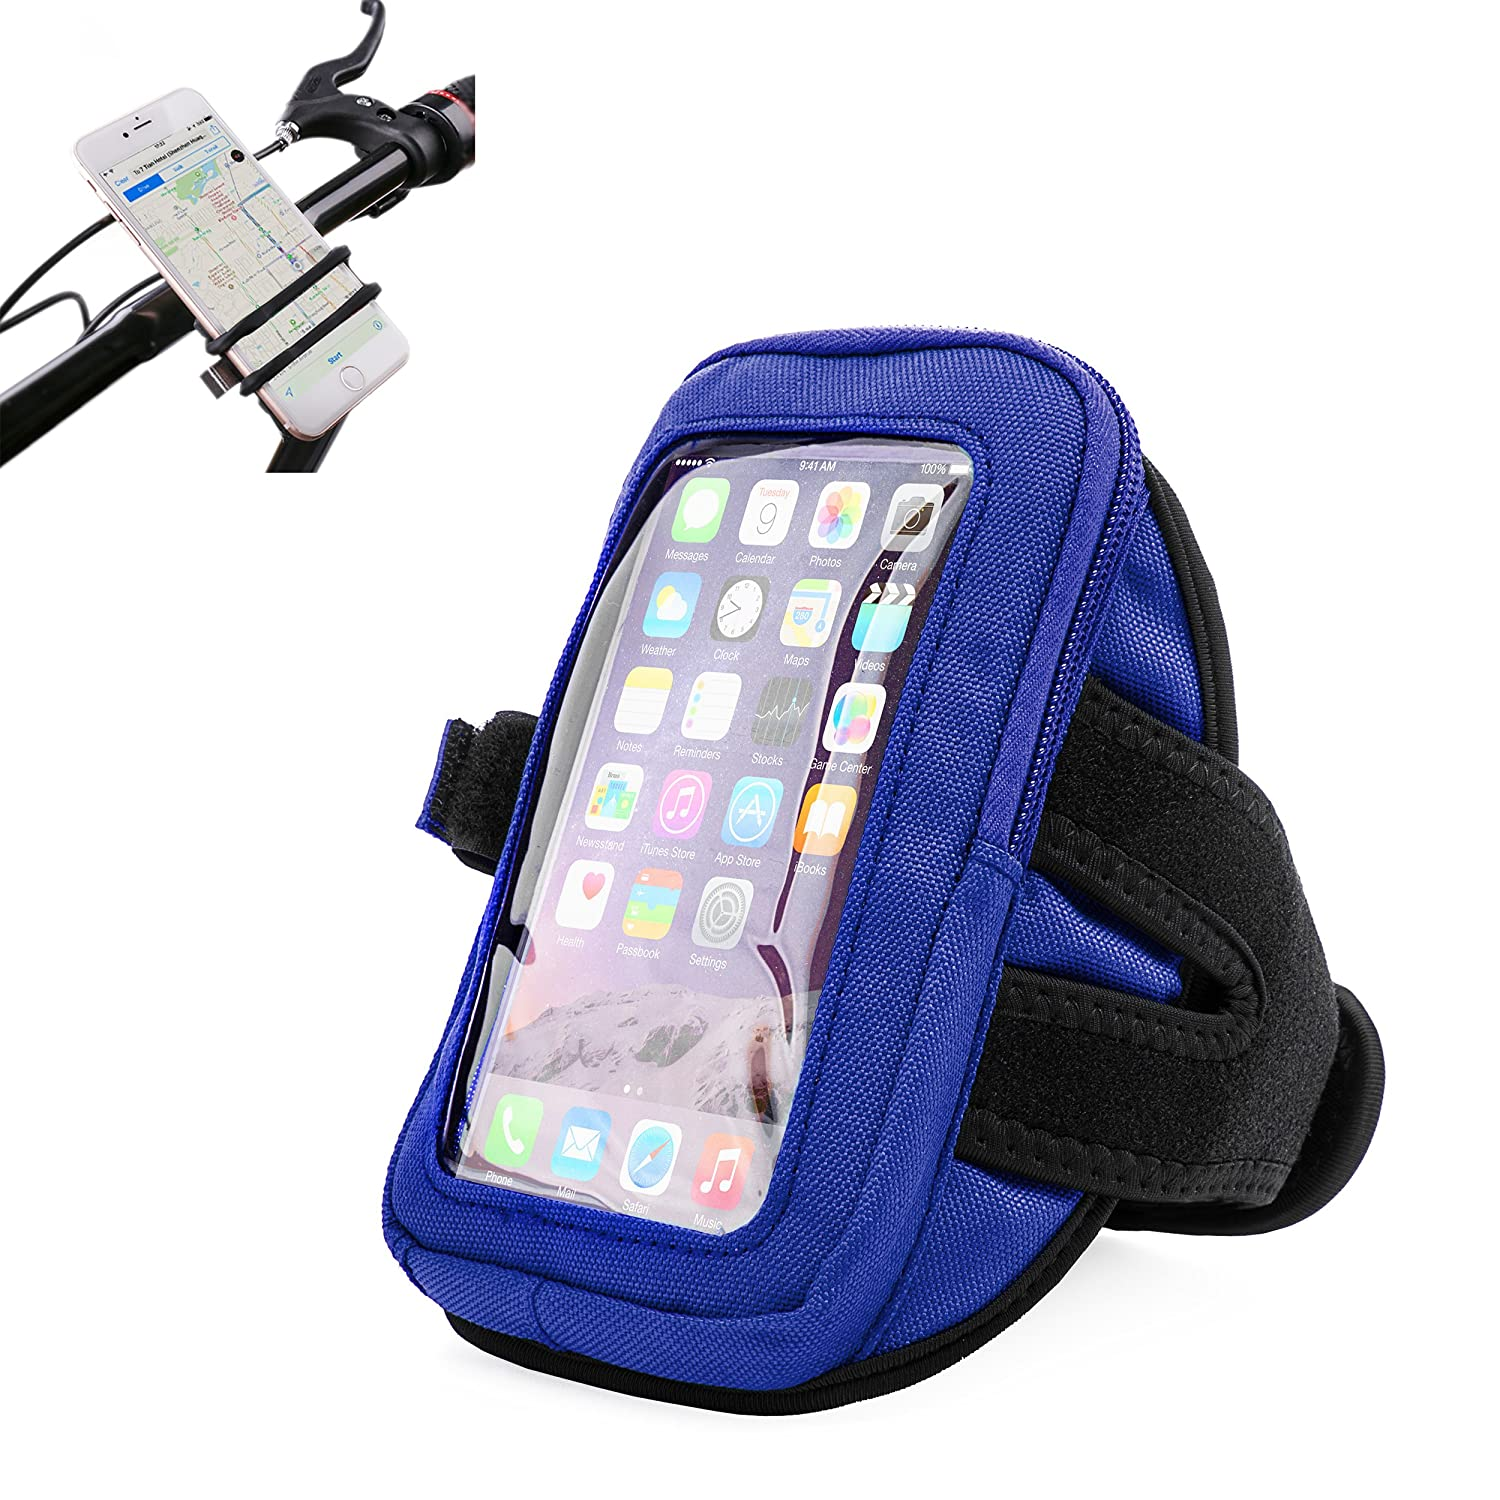 Amazon com: Blue Zippered Sports Arm Band for Huawei Elate 4G 5 5 in